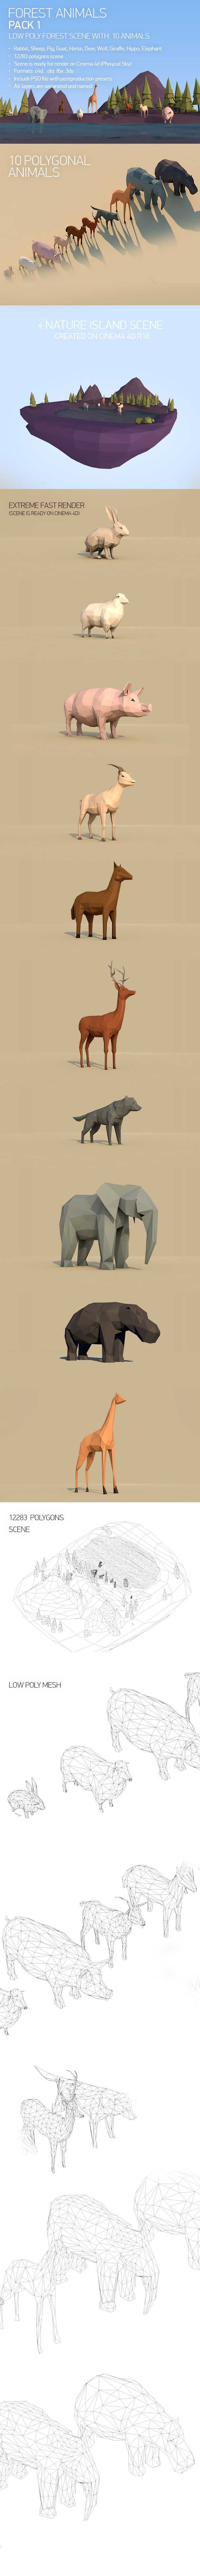 Low Poly Forest Animals Pack 1 3D Models Design Template #cinema4d #3D #3dDesign Download here: https://3docean.net/item/low-poly-forest-animals-pack-1/15083207?ref=yinkira